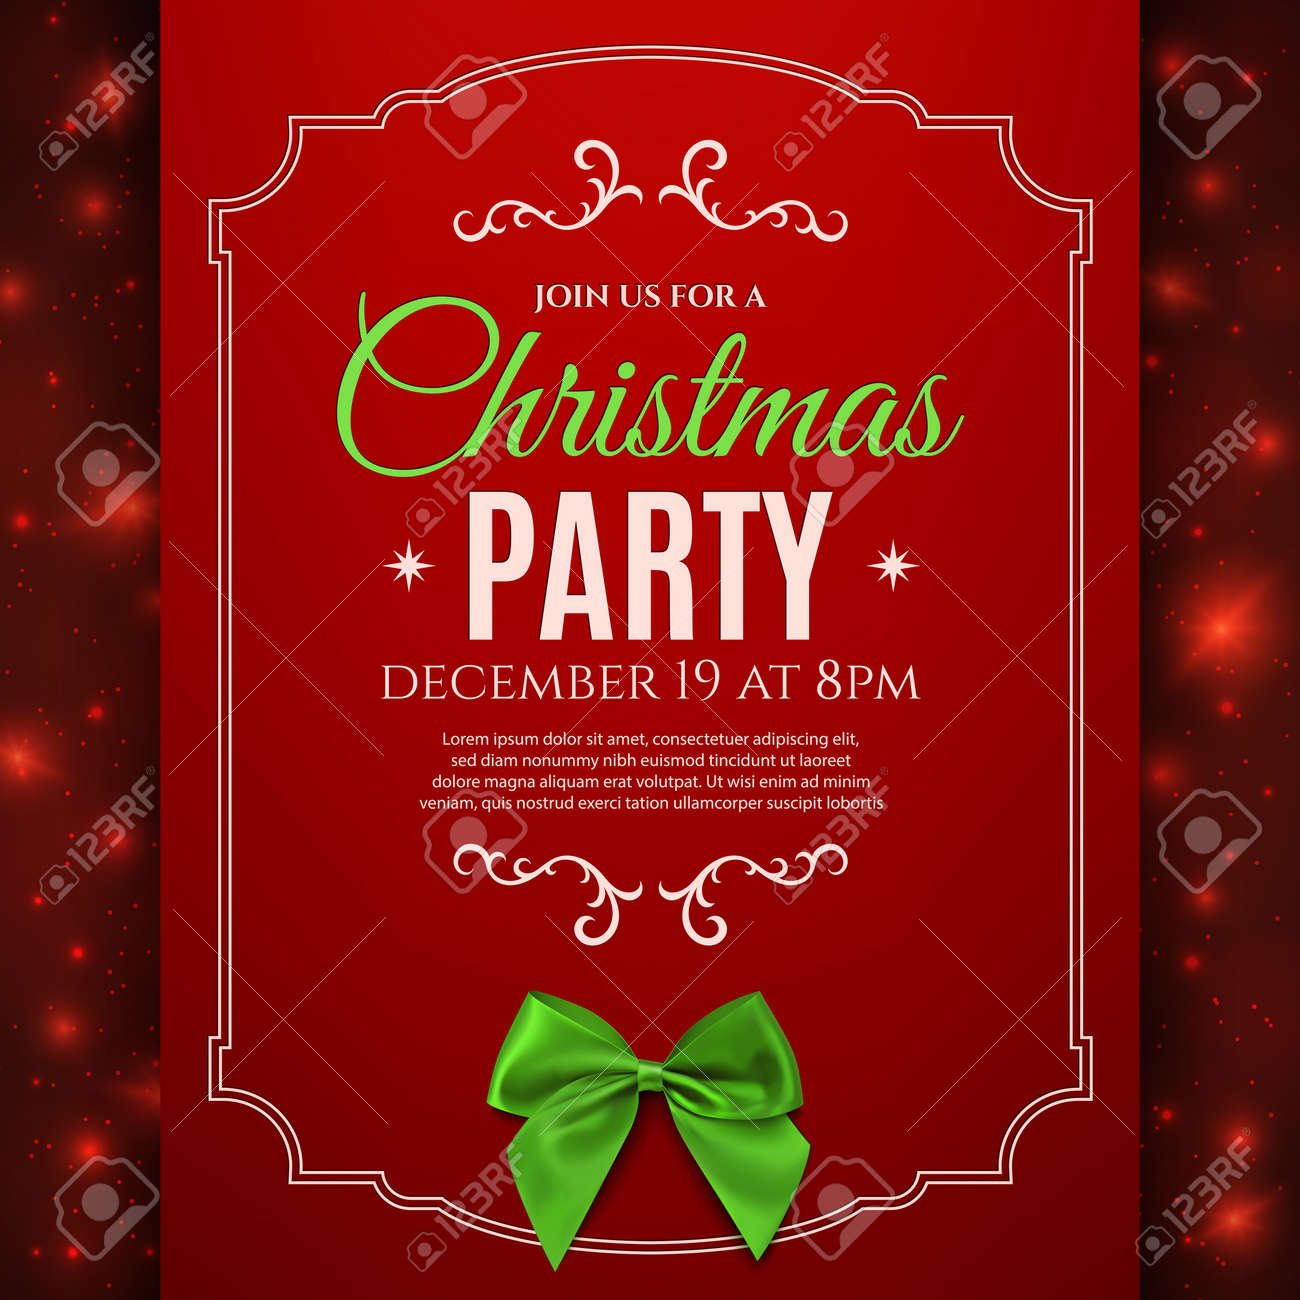 Christmas Party Poster Template With Green Bow Christmas – Christmas Poster Template